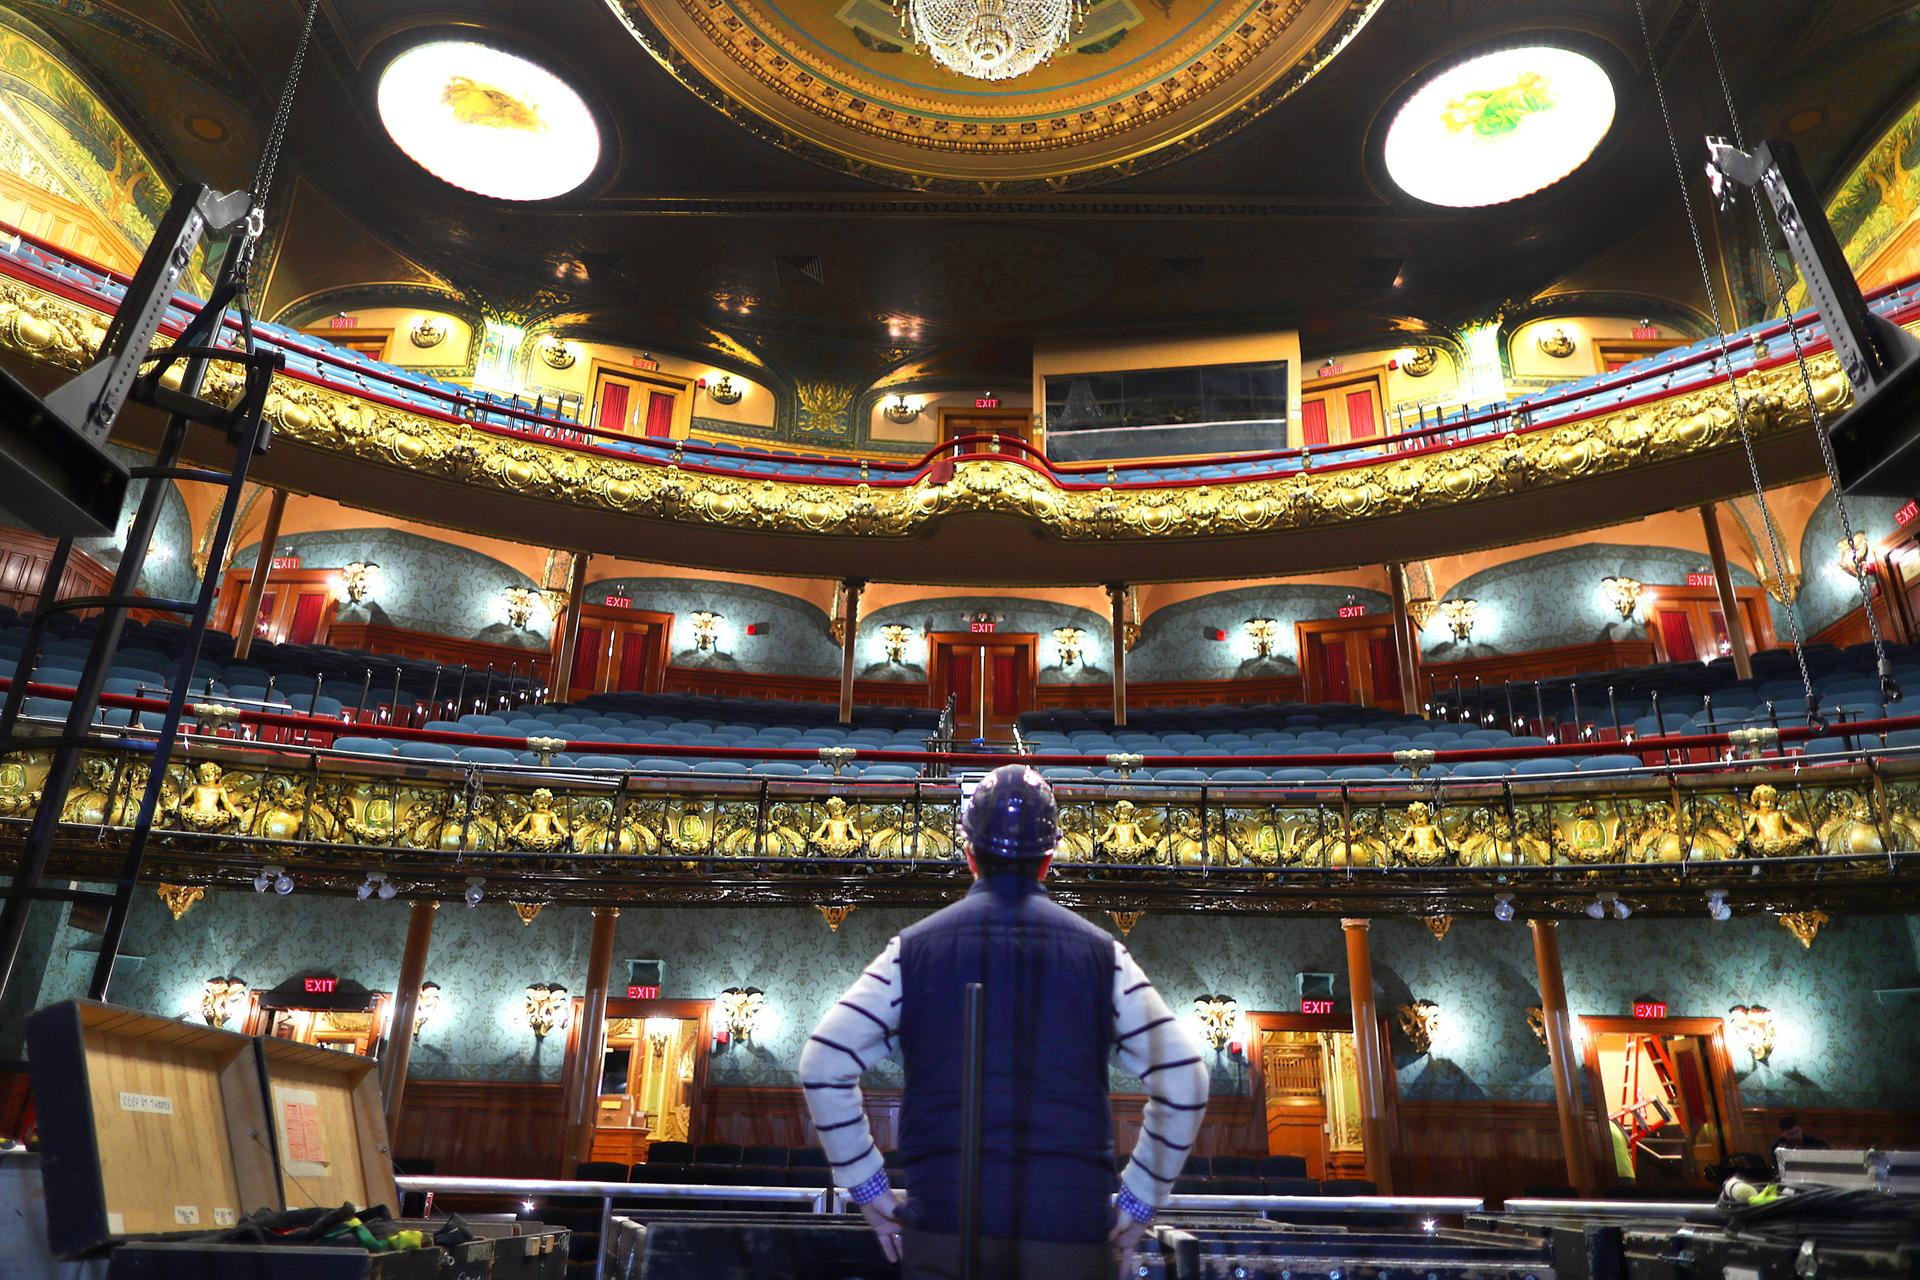 Extensive renovations have been made to the Emerson Colonial Theatre, which will open June 27.